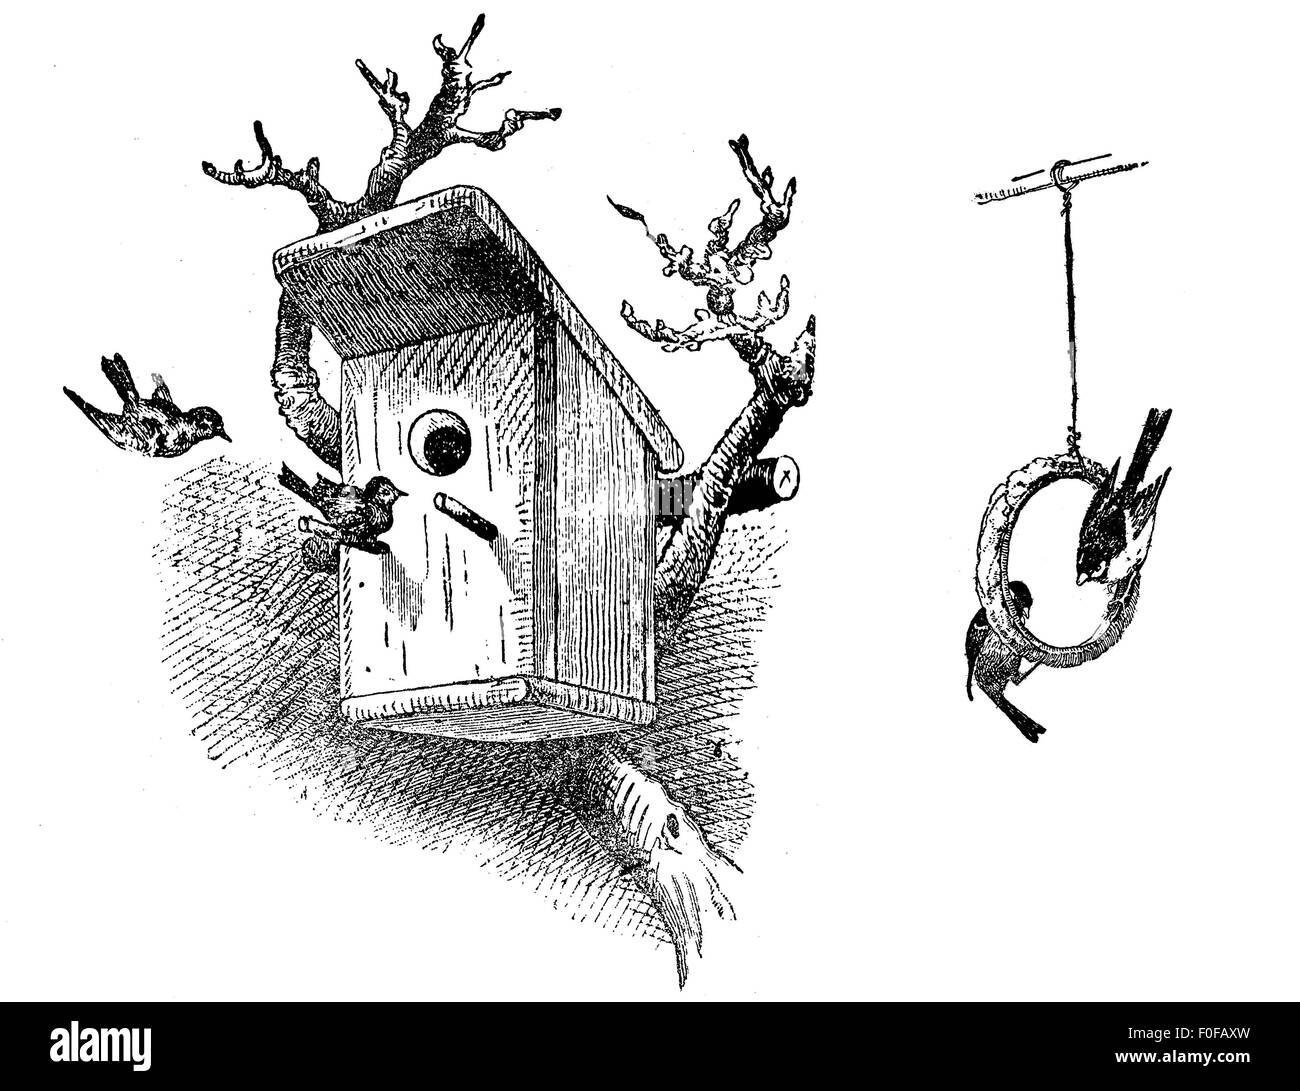 engraving of wooden bird house on tree and birds hanging from a birdseed ring - Stock Image